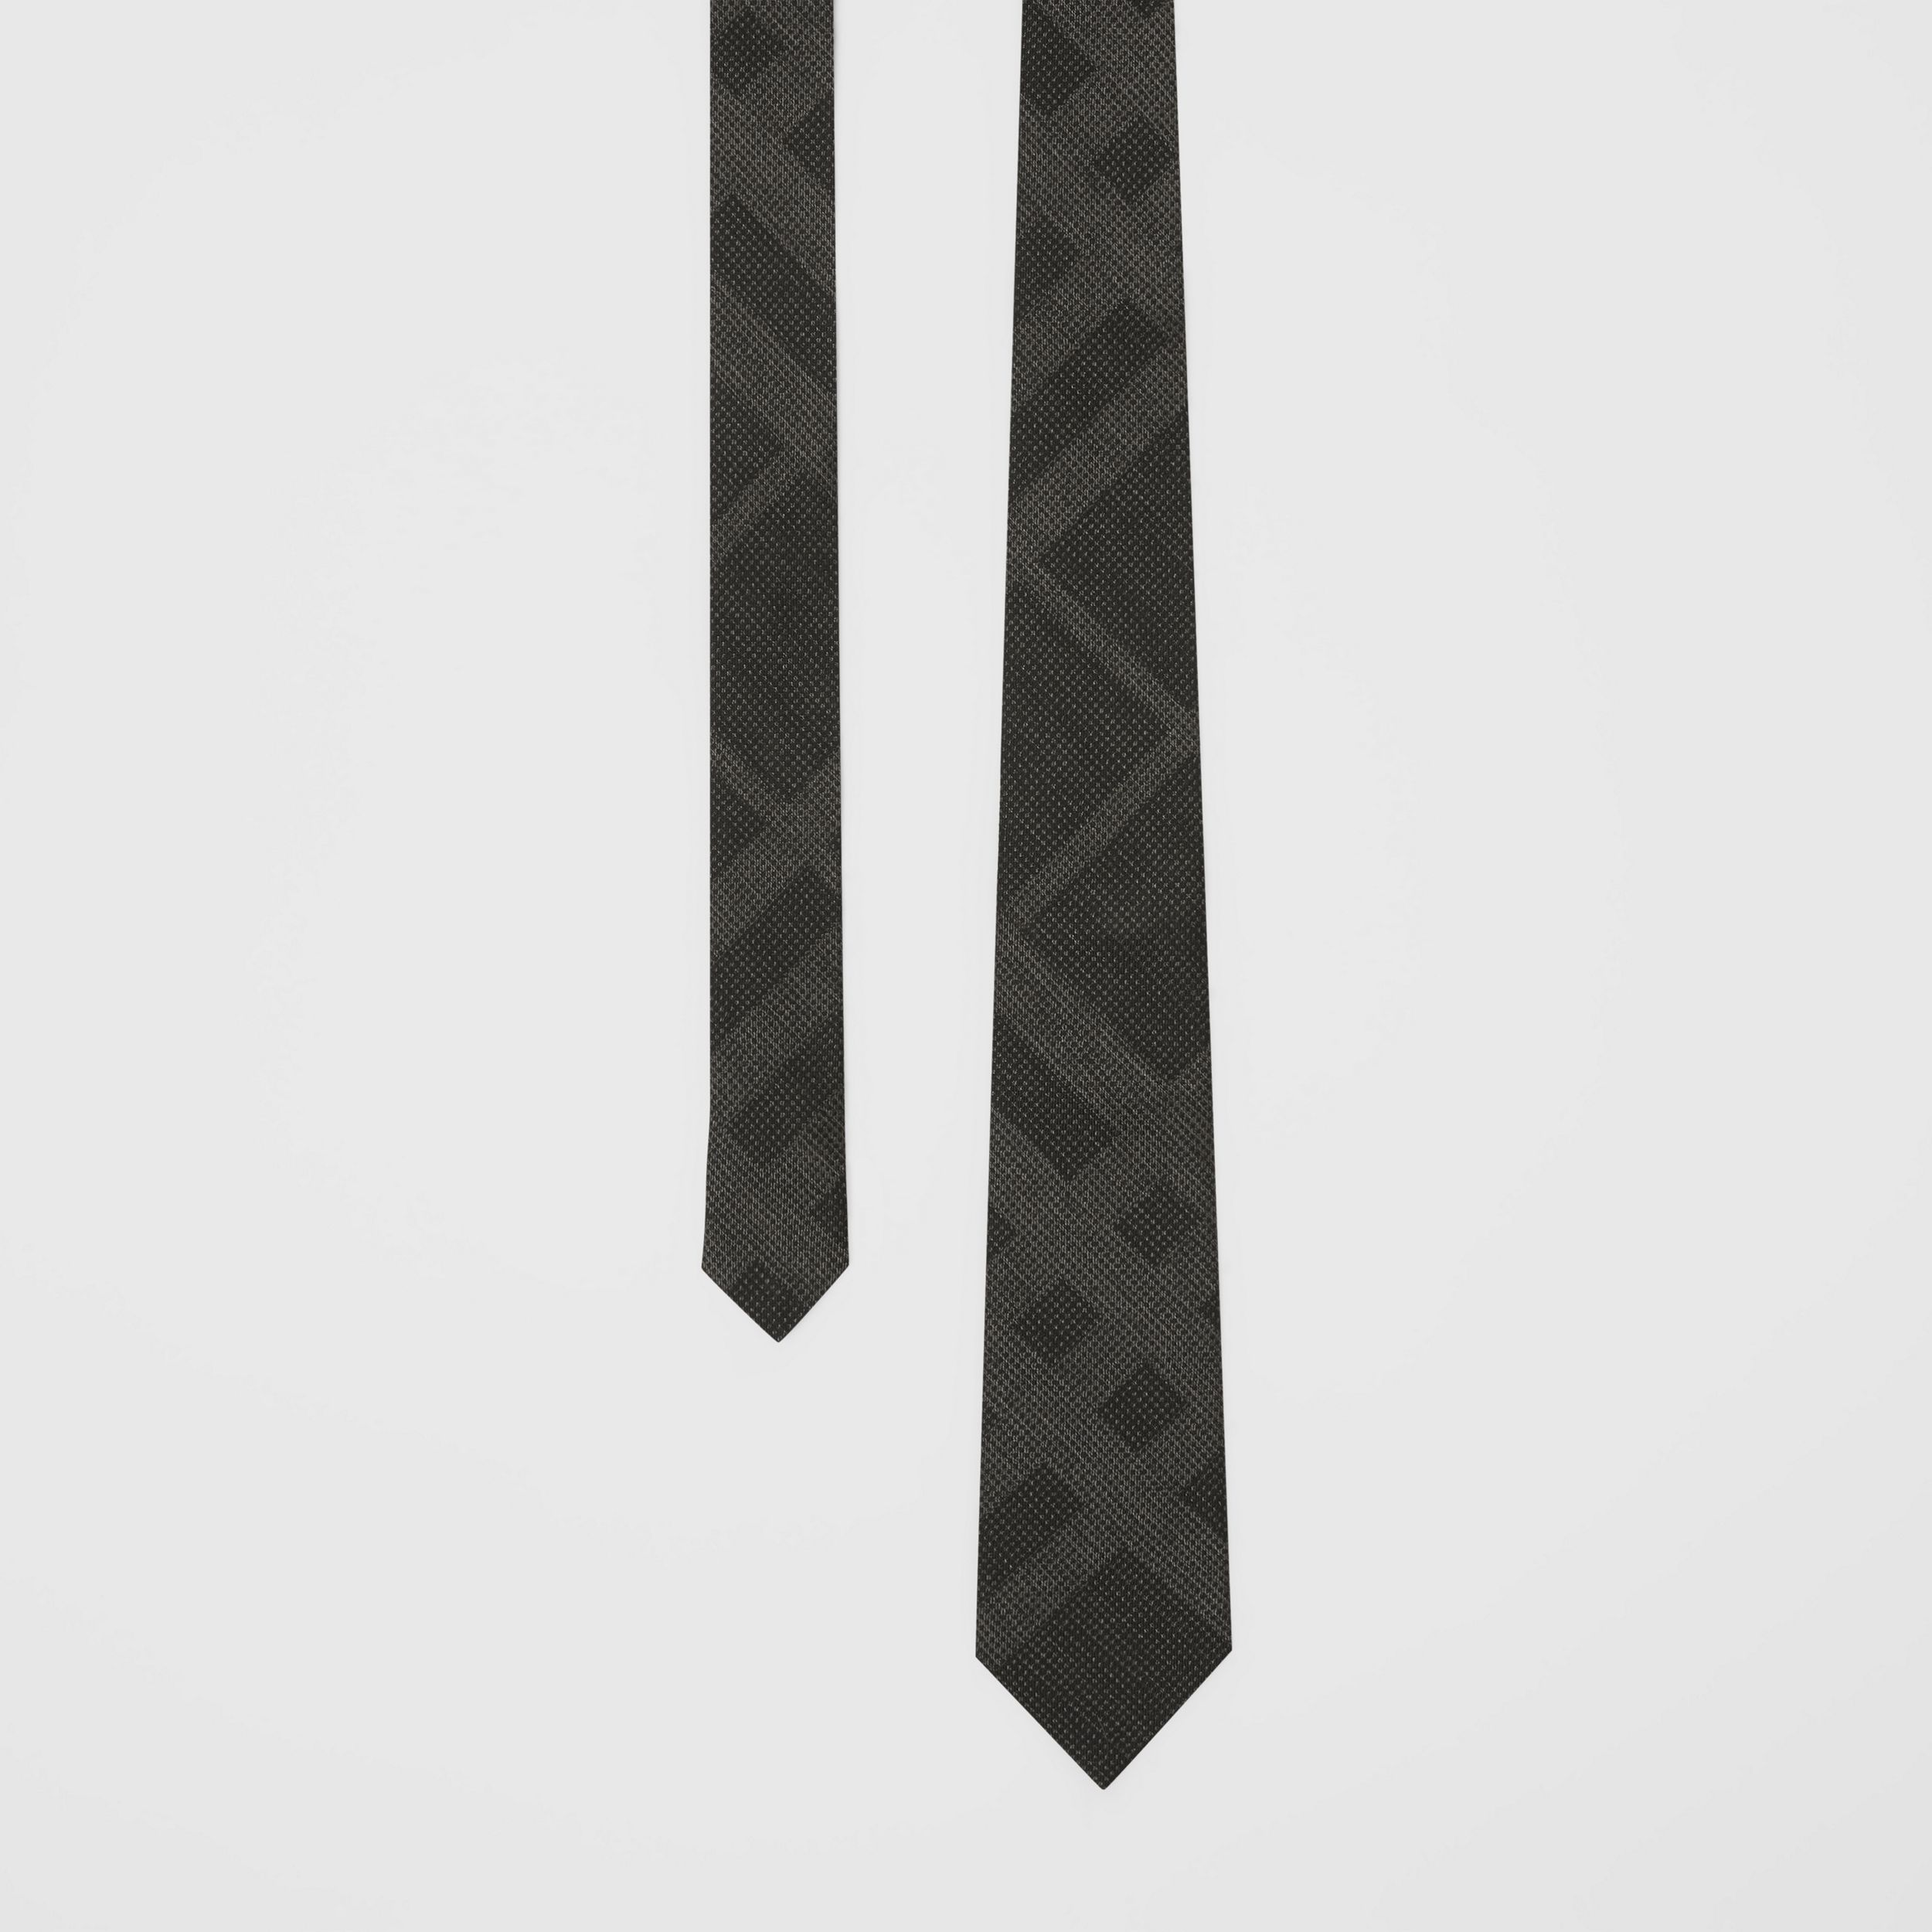 Classic Cut Check Silk Tie in Dark Grey Melange - Men | Burberry - 1